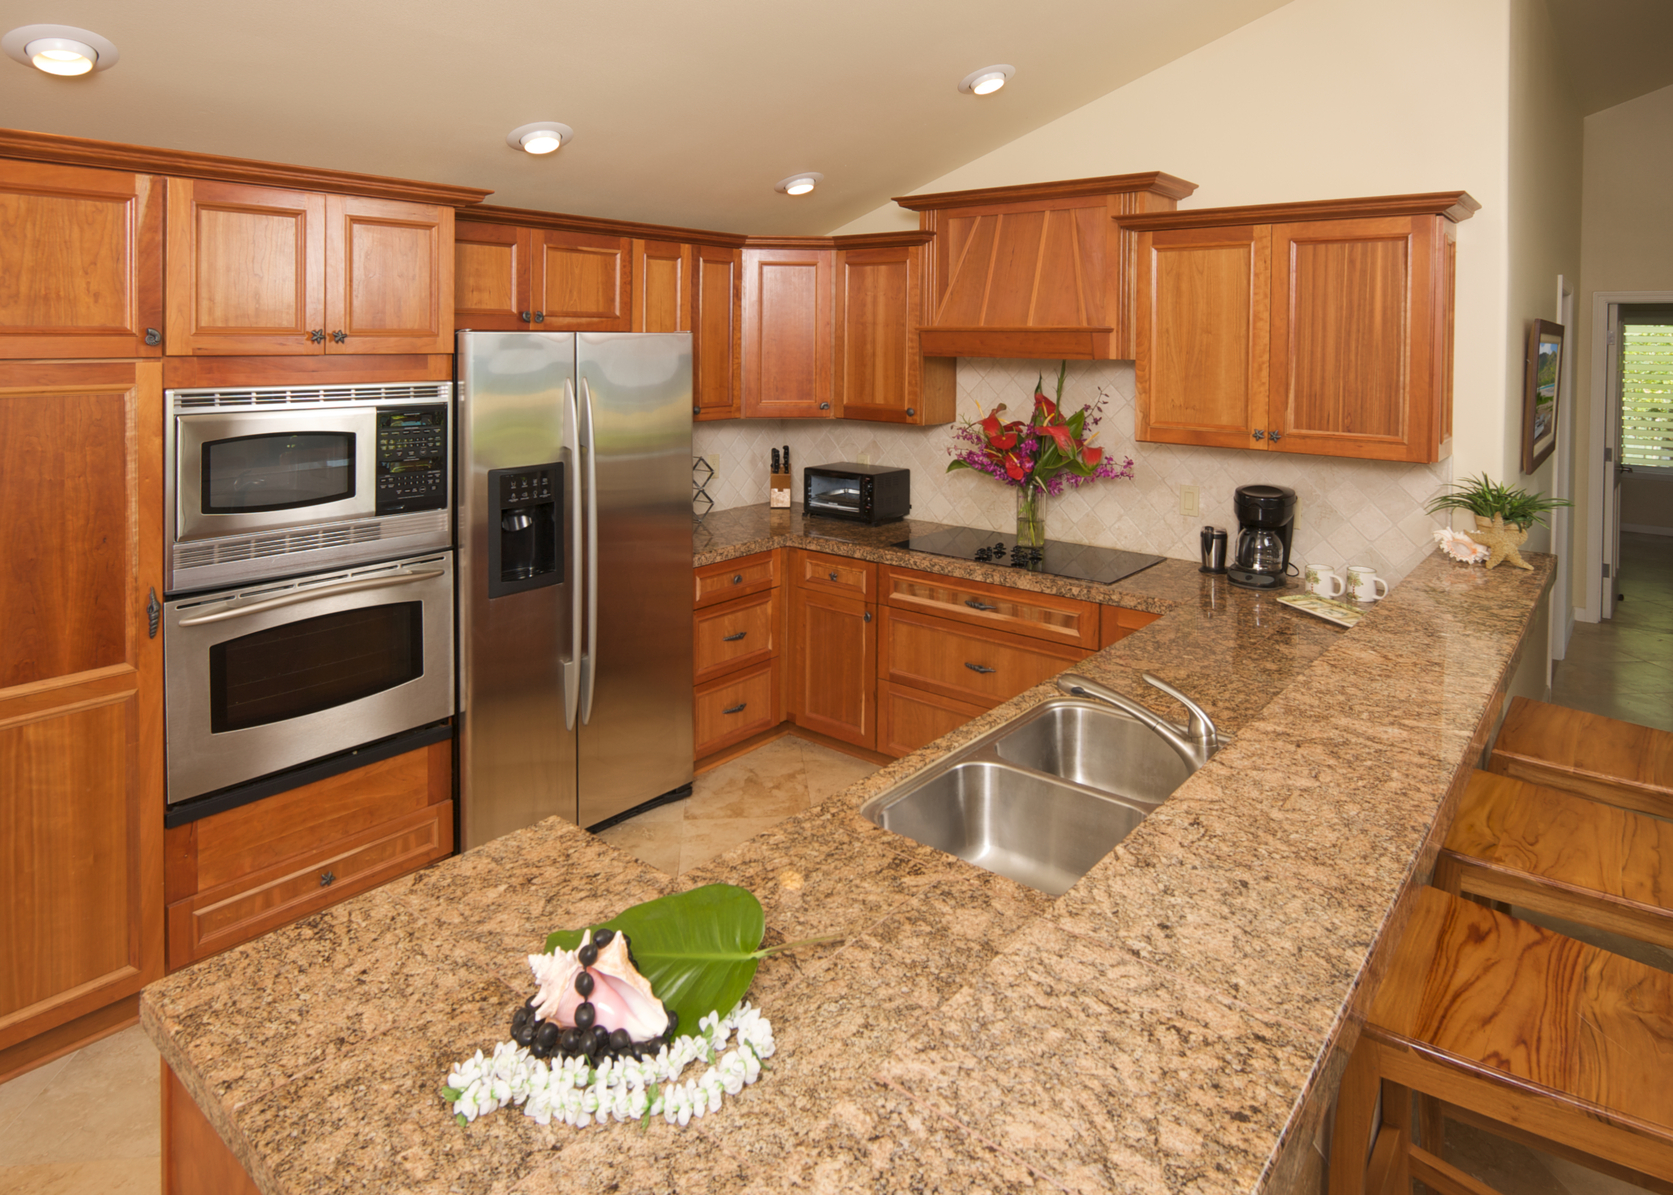 how much does it cost to remodel a kitchen kitchen remodeling cost cost to remodel a kitchen